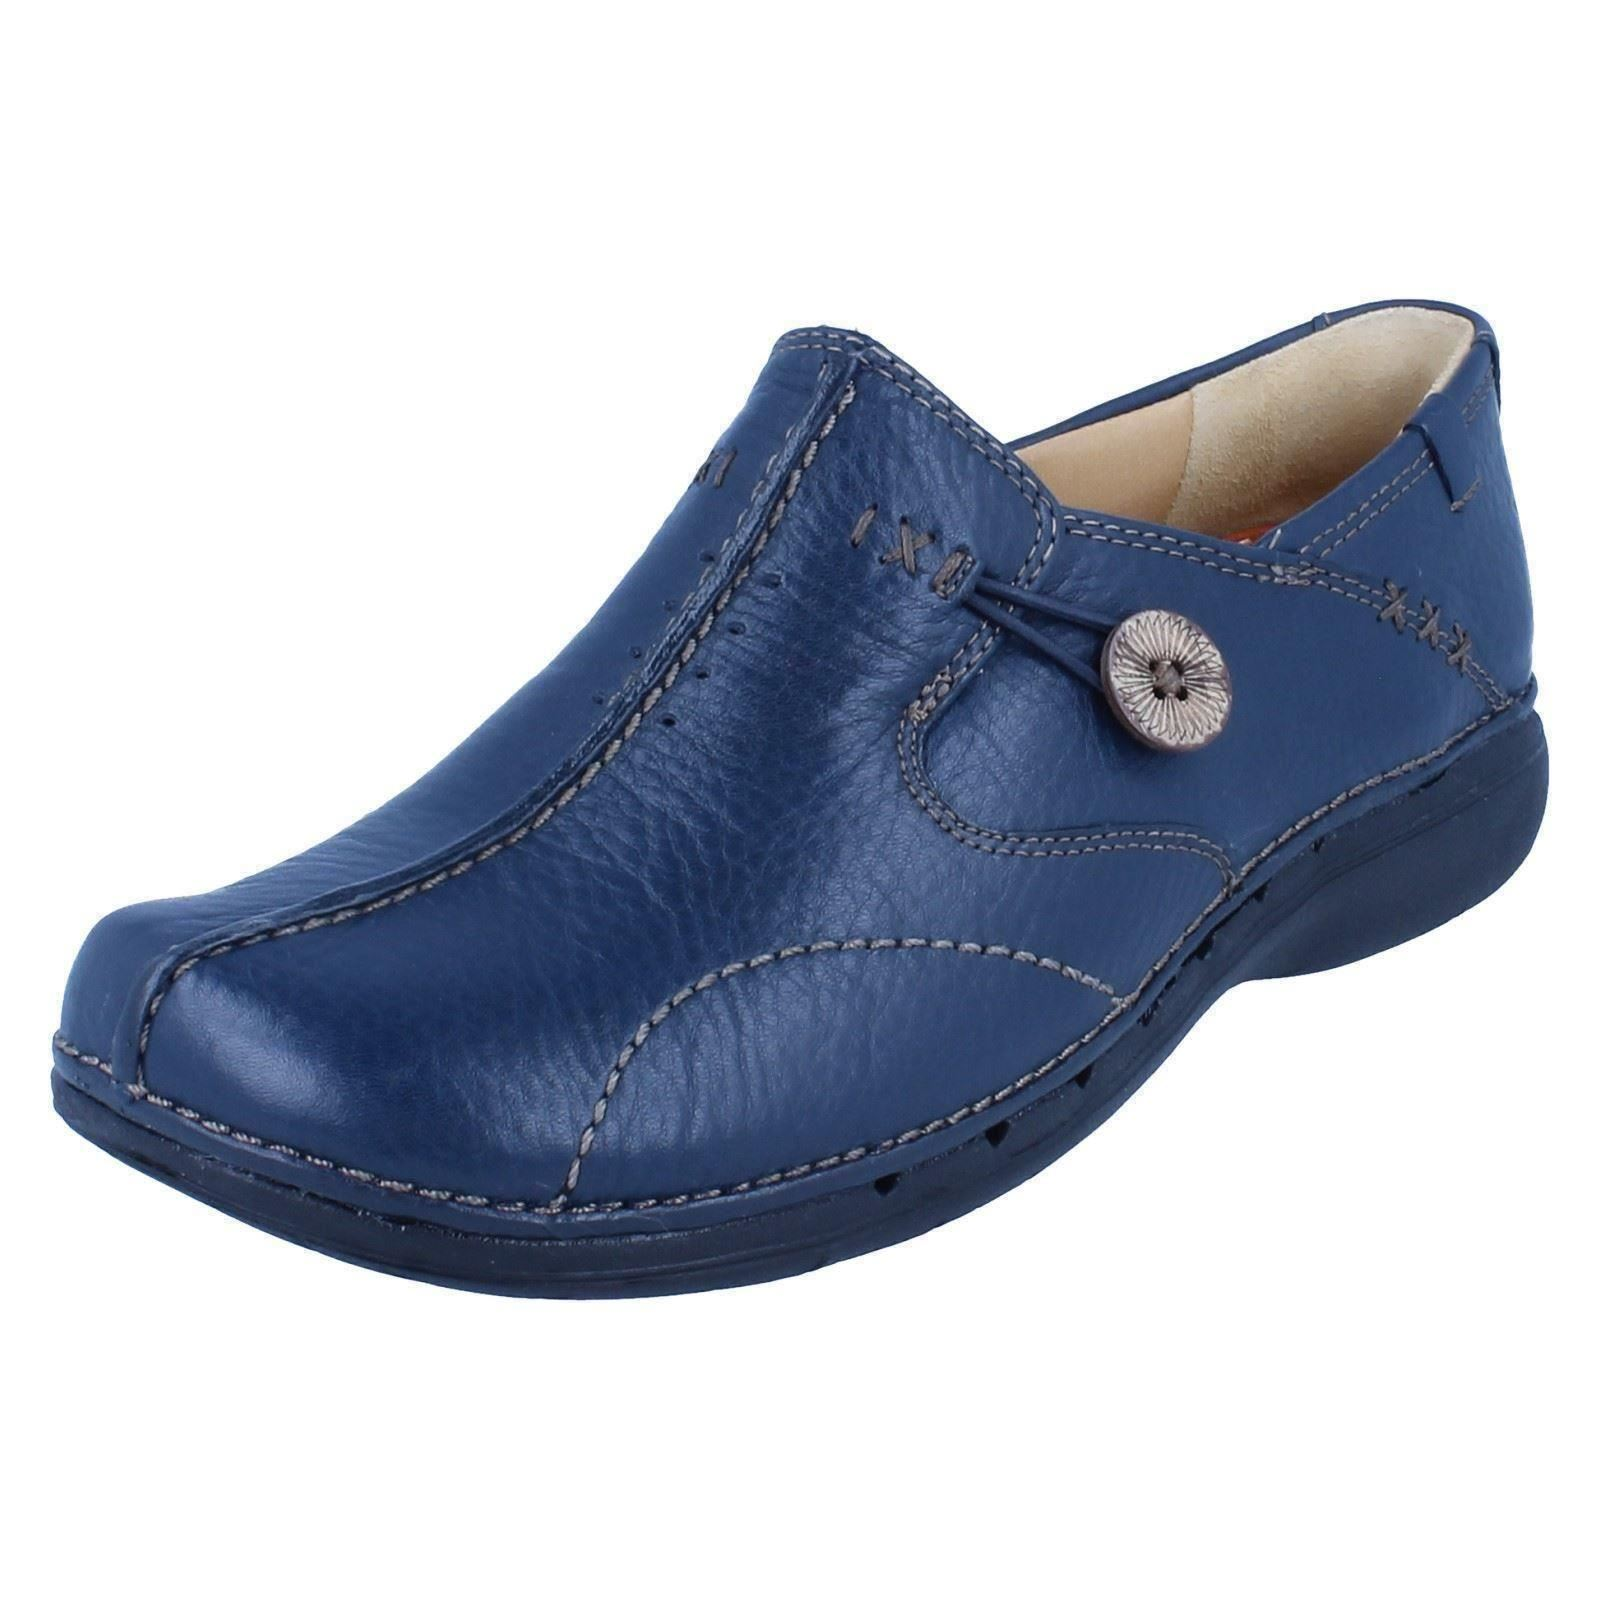 Ladies Black Shoes From Clarks